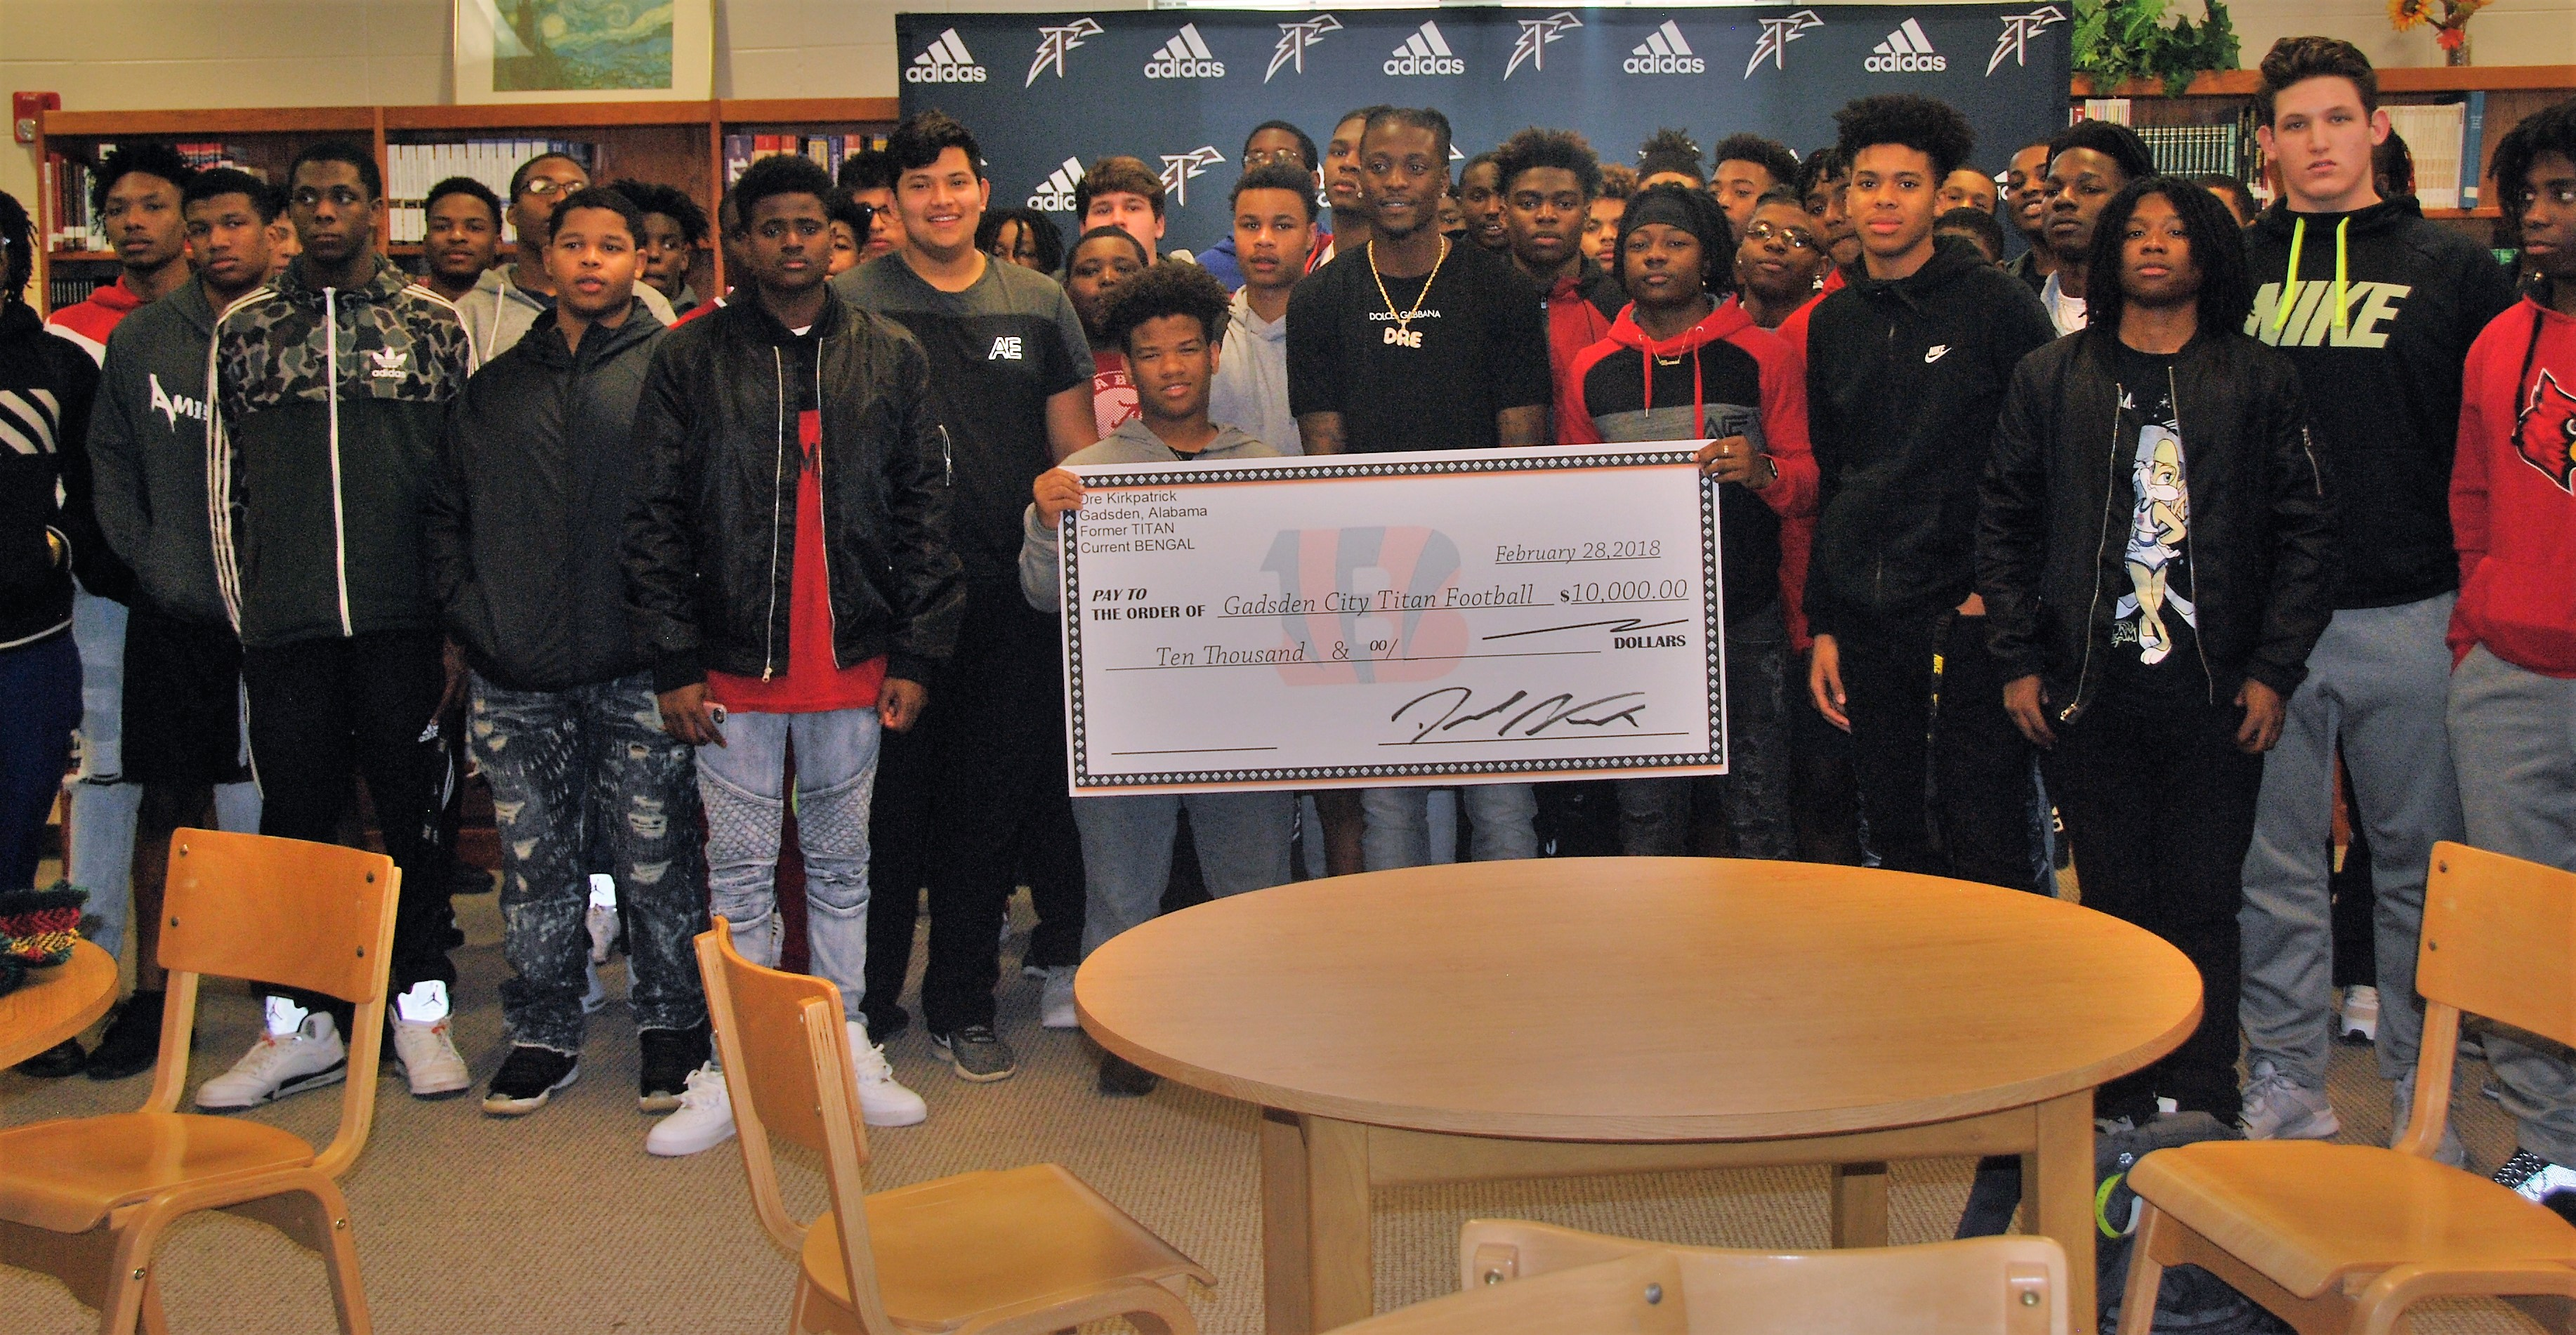 Dre with Members of the GCHS Football Team